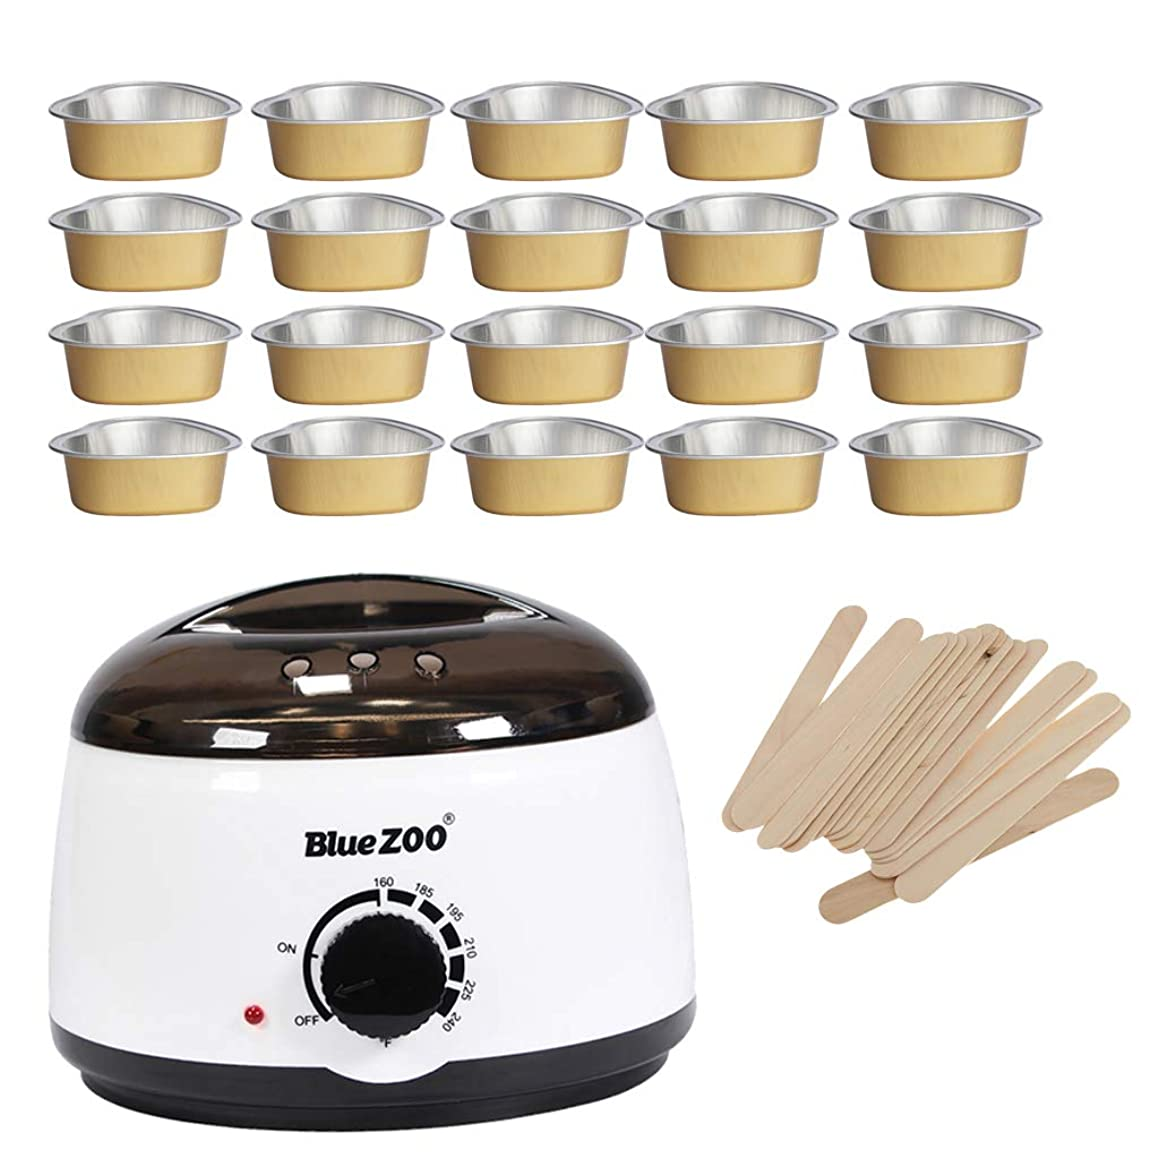 Prettyia 500cc Women Men Hair Removal Depilatory Hot Wax Beans Beads Warmer Heater Machine + 20 Melting Bowls + 50 Disposable Applicator Sticks Kit Set